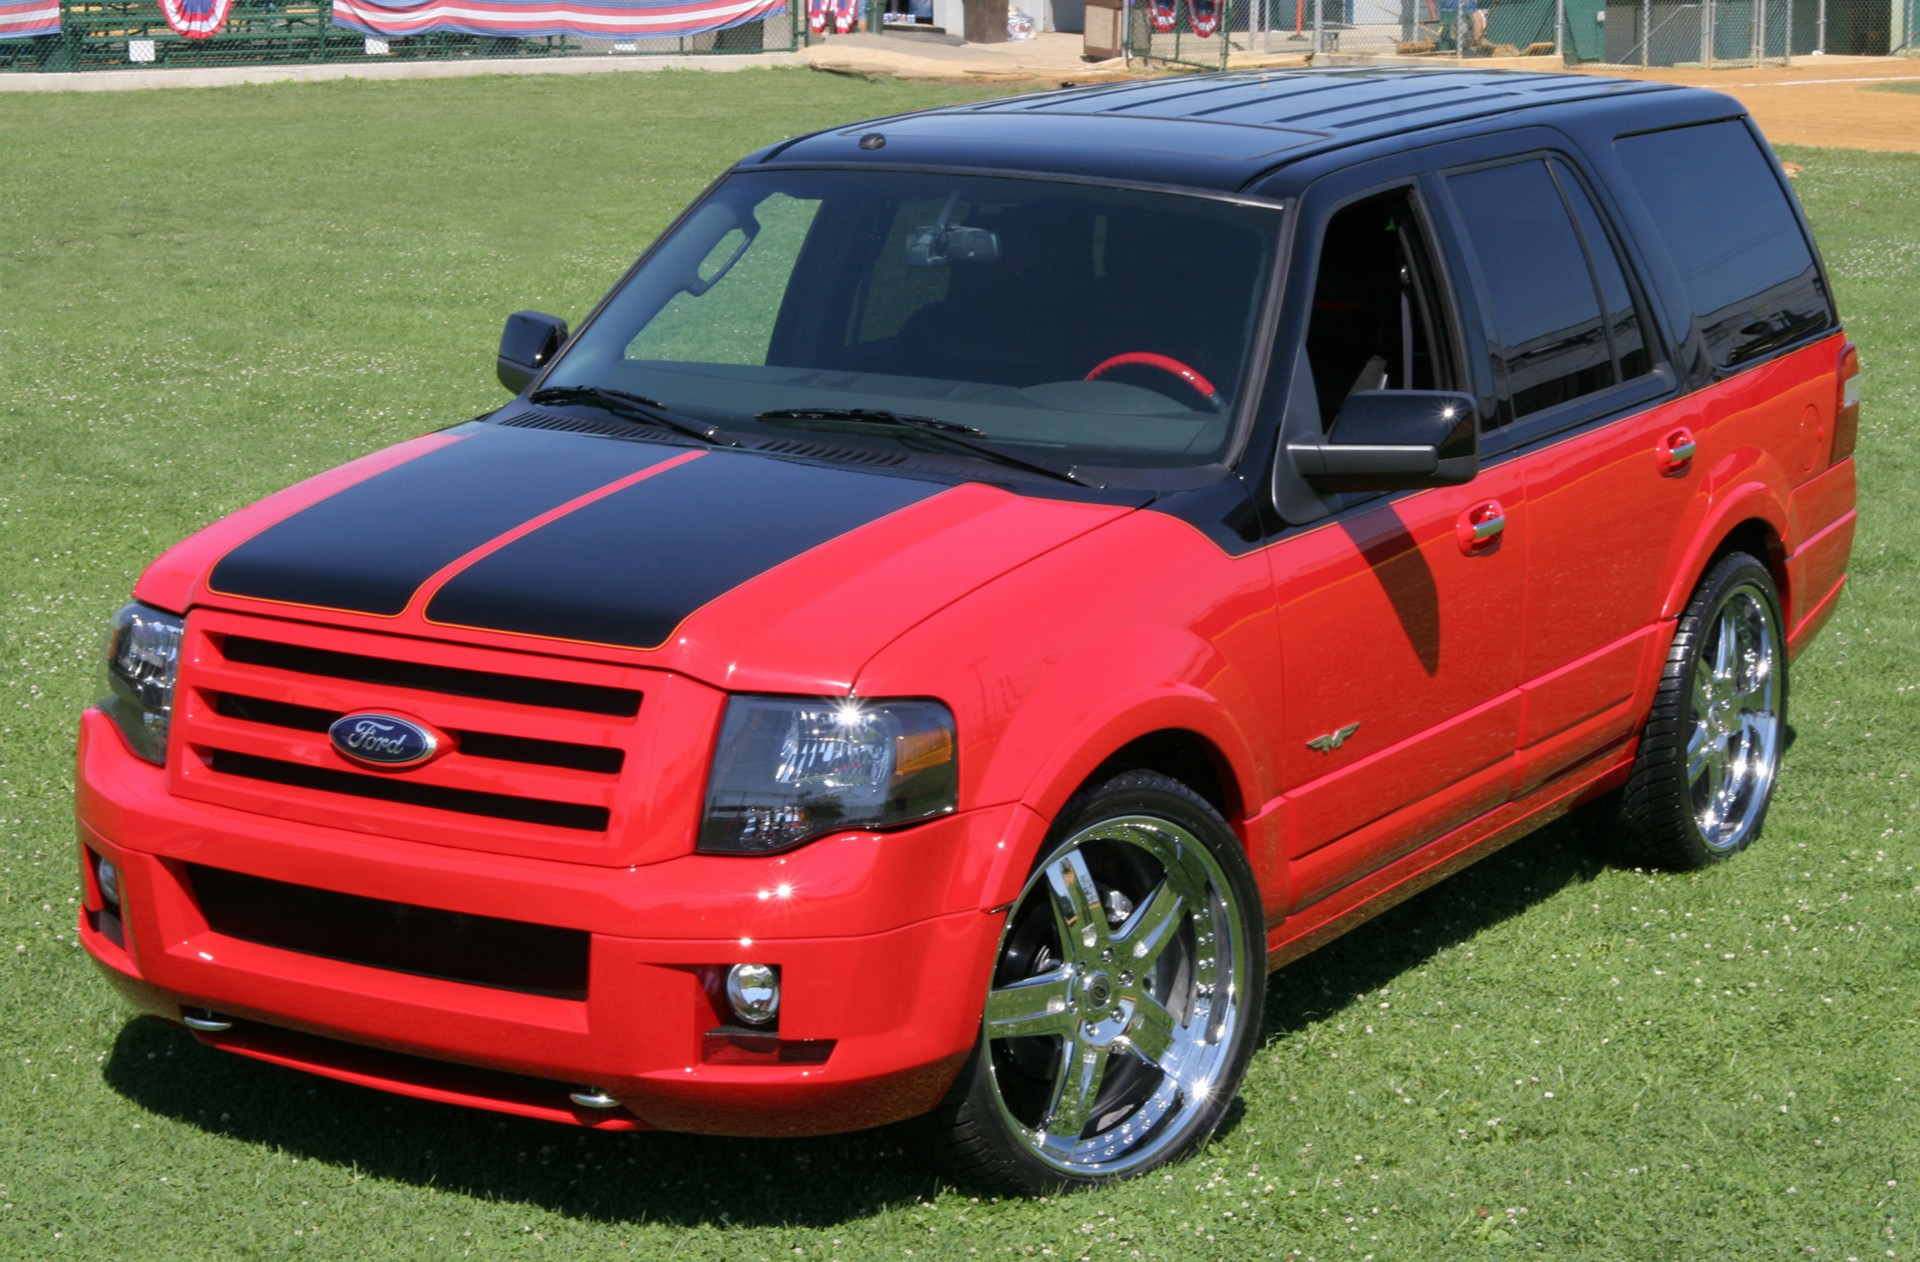 Extremely Rare And Cool Special Edition Packages Limited Run 1980 F150 Ford Explorer Black Expedition Flex Manu 07 01